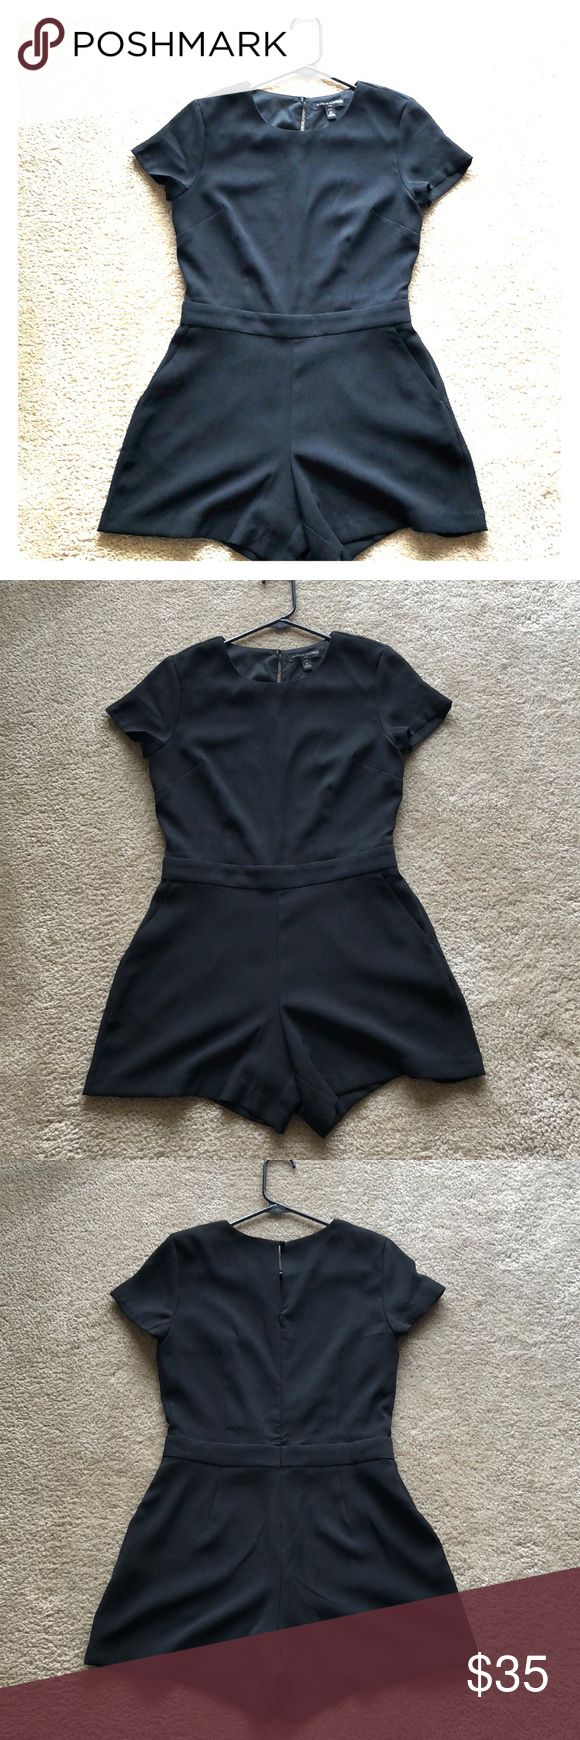 Black Banana Republic Romper - Size 2 Adorable black romper with sleeves, shorts, and key hole back. Easy to accessorize with! Worn one time for bachelorette party, excellent condition. Petite! Banana Republic Other